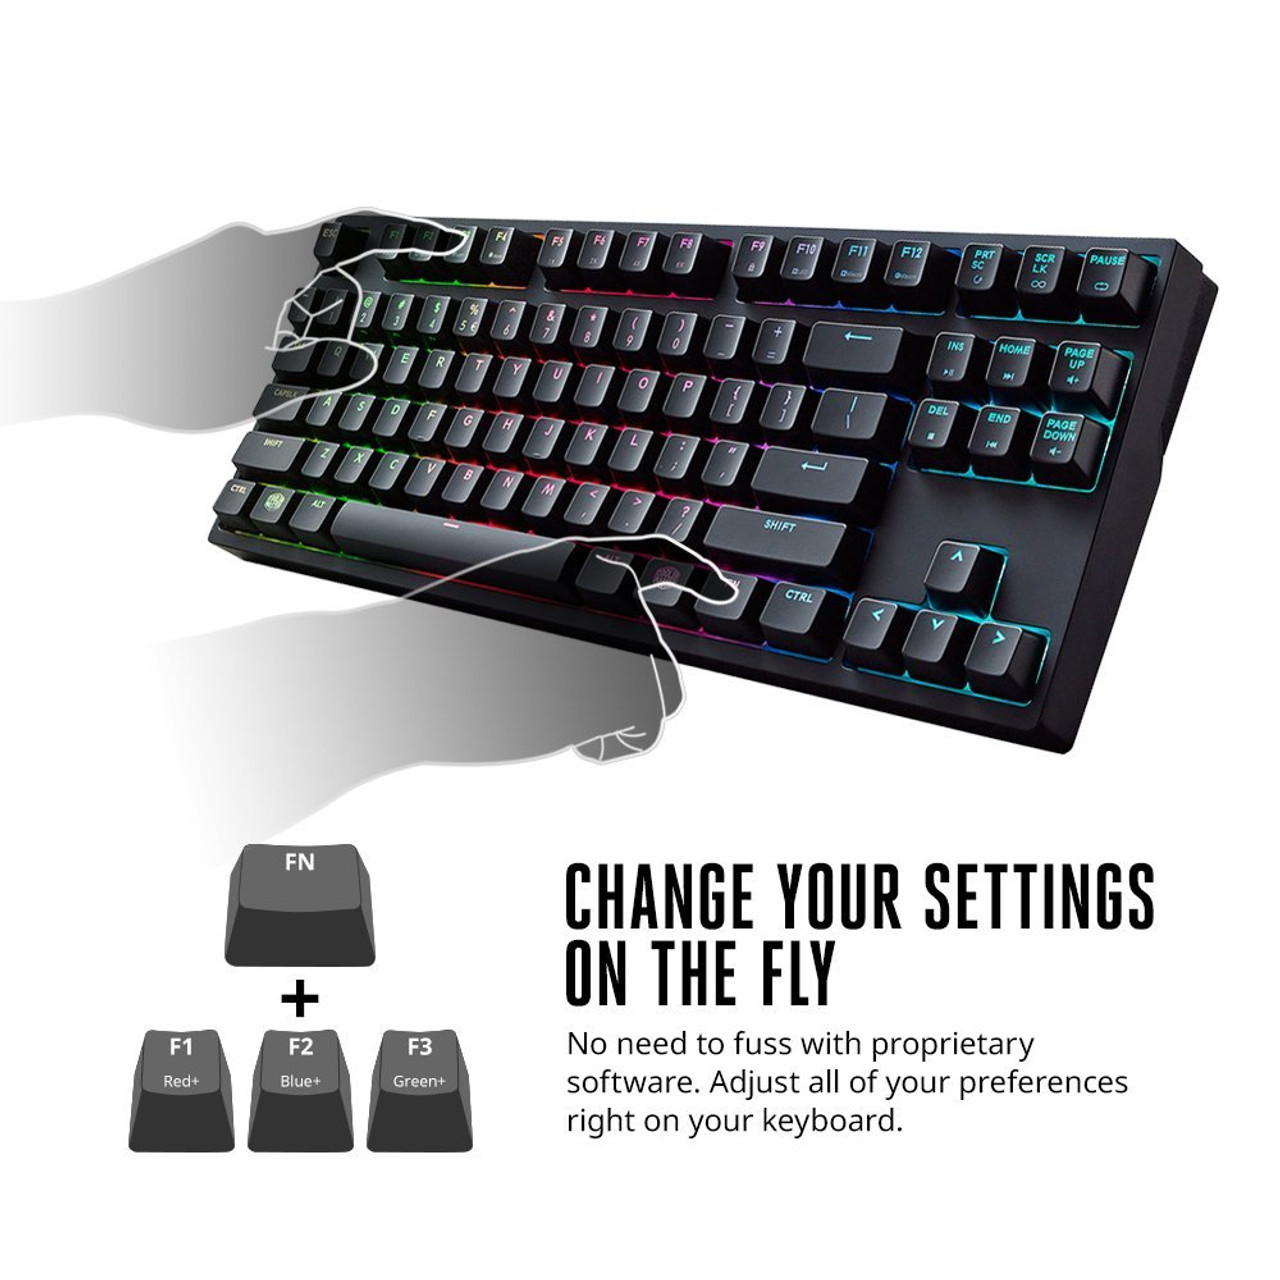 Cooler Master Masterkeys Pro S Rgb Mechanical Gaming Keyboard Corsair K65 Red Switch Cherry Mx Blue Clicky